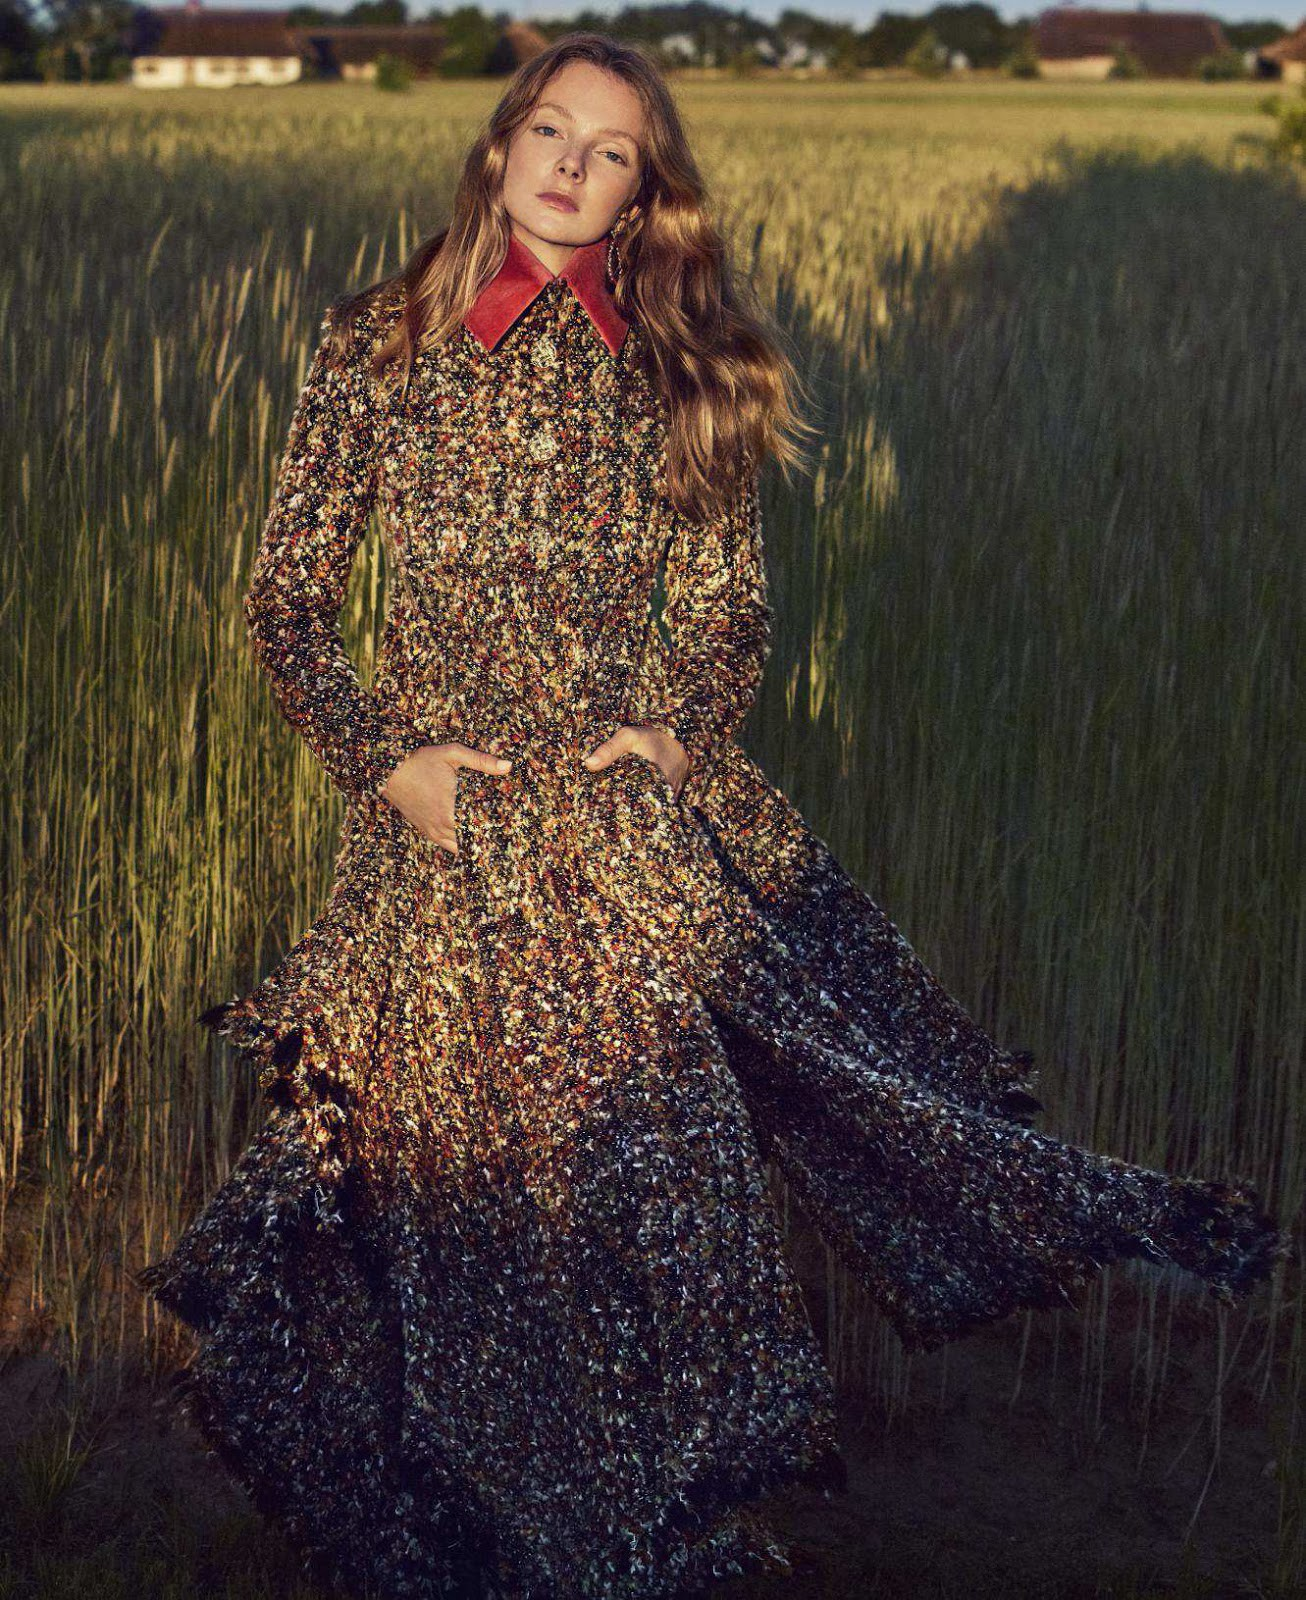 Eniko Mihalik in Harpers Bazaar US august 2018 by Marcin Tyszka